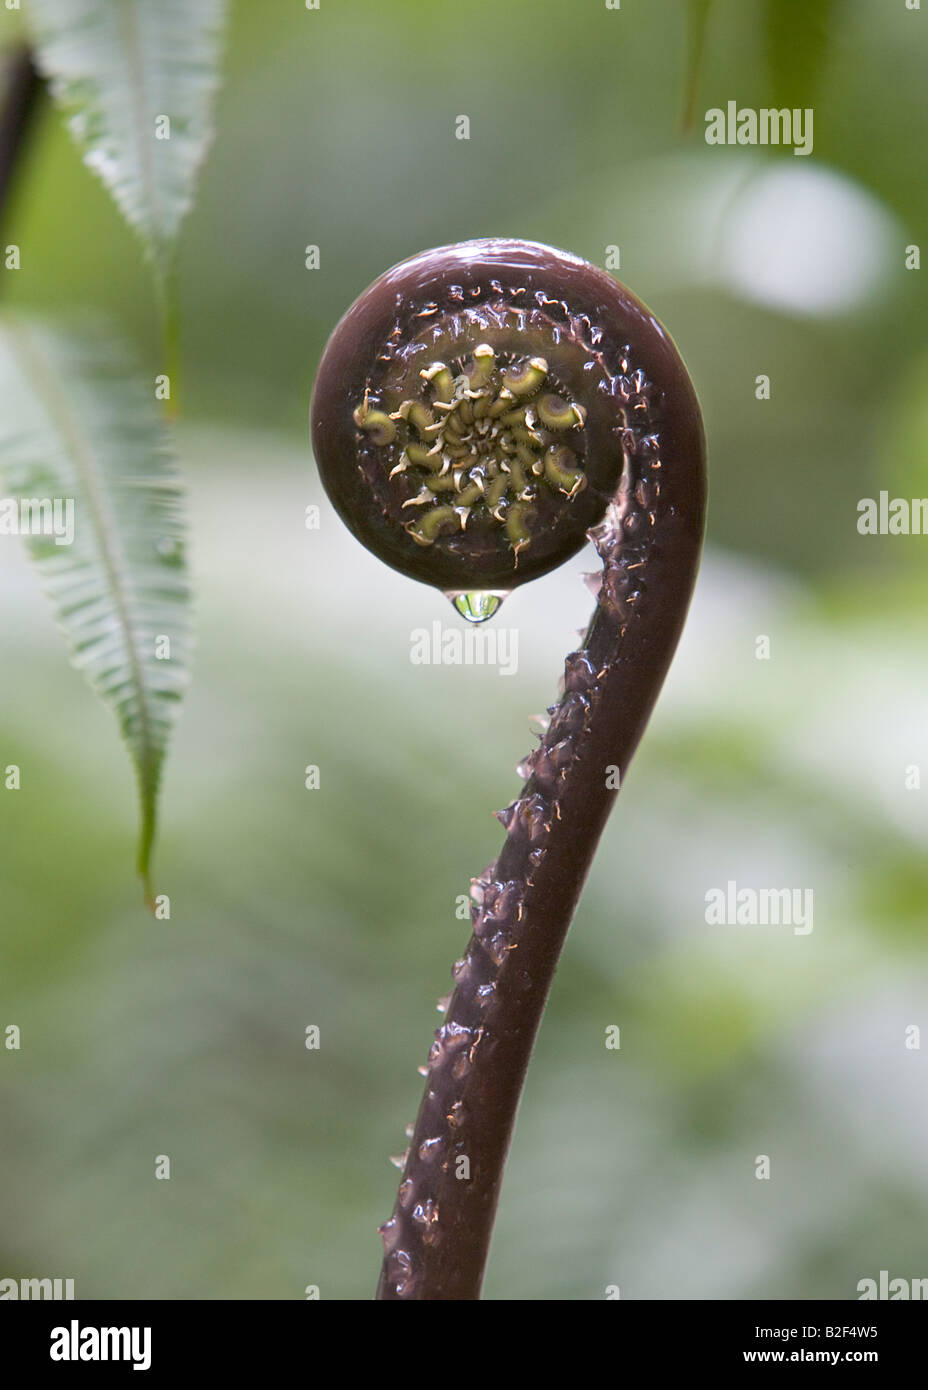 A large fern fiddlehead growing in a rain forest in Dominica West Indies - Stock Image